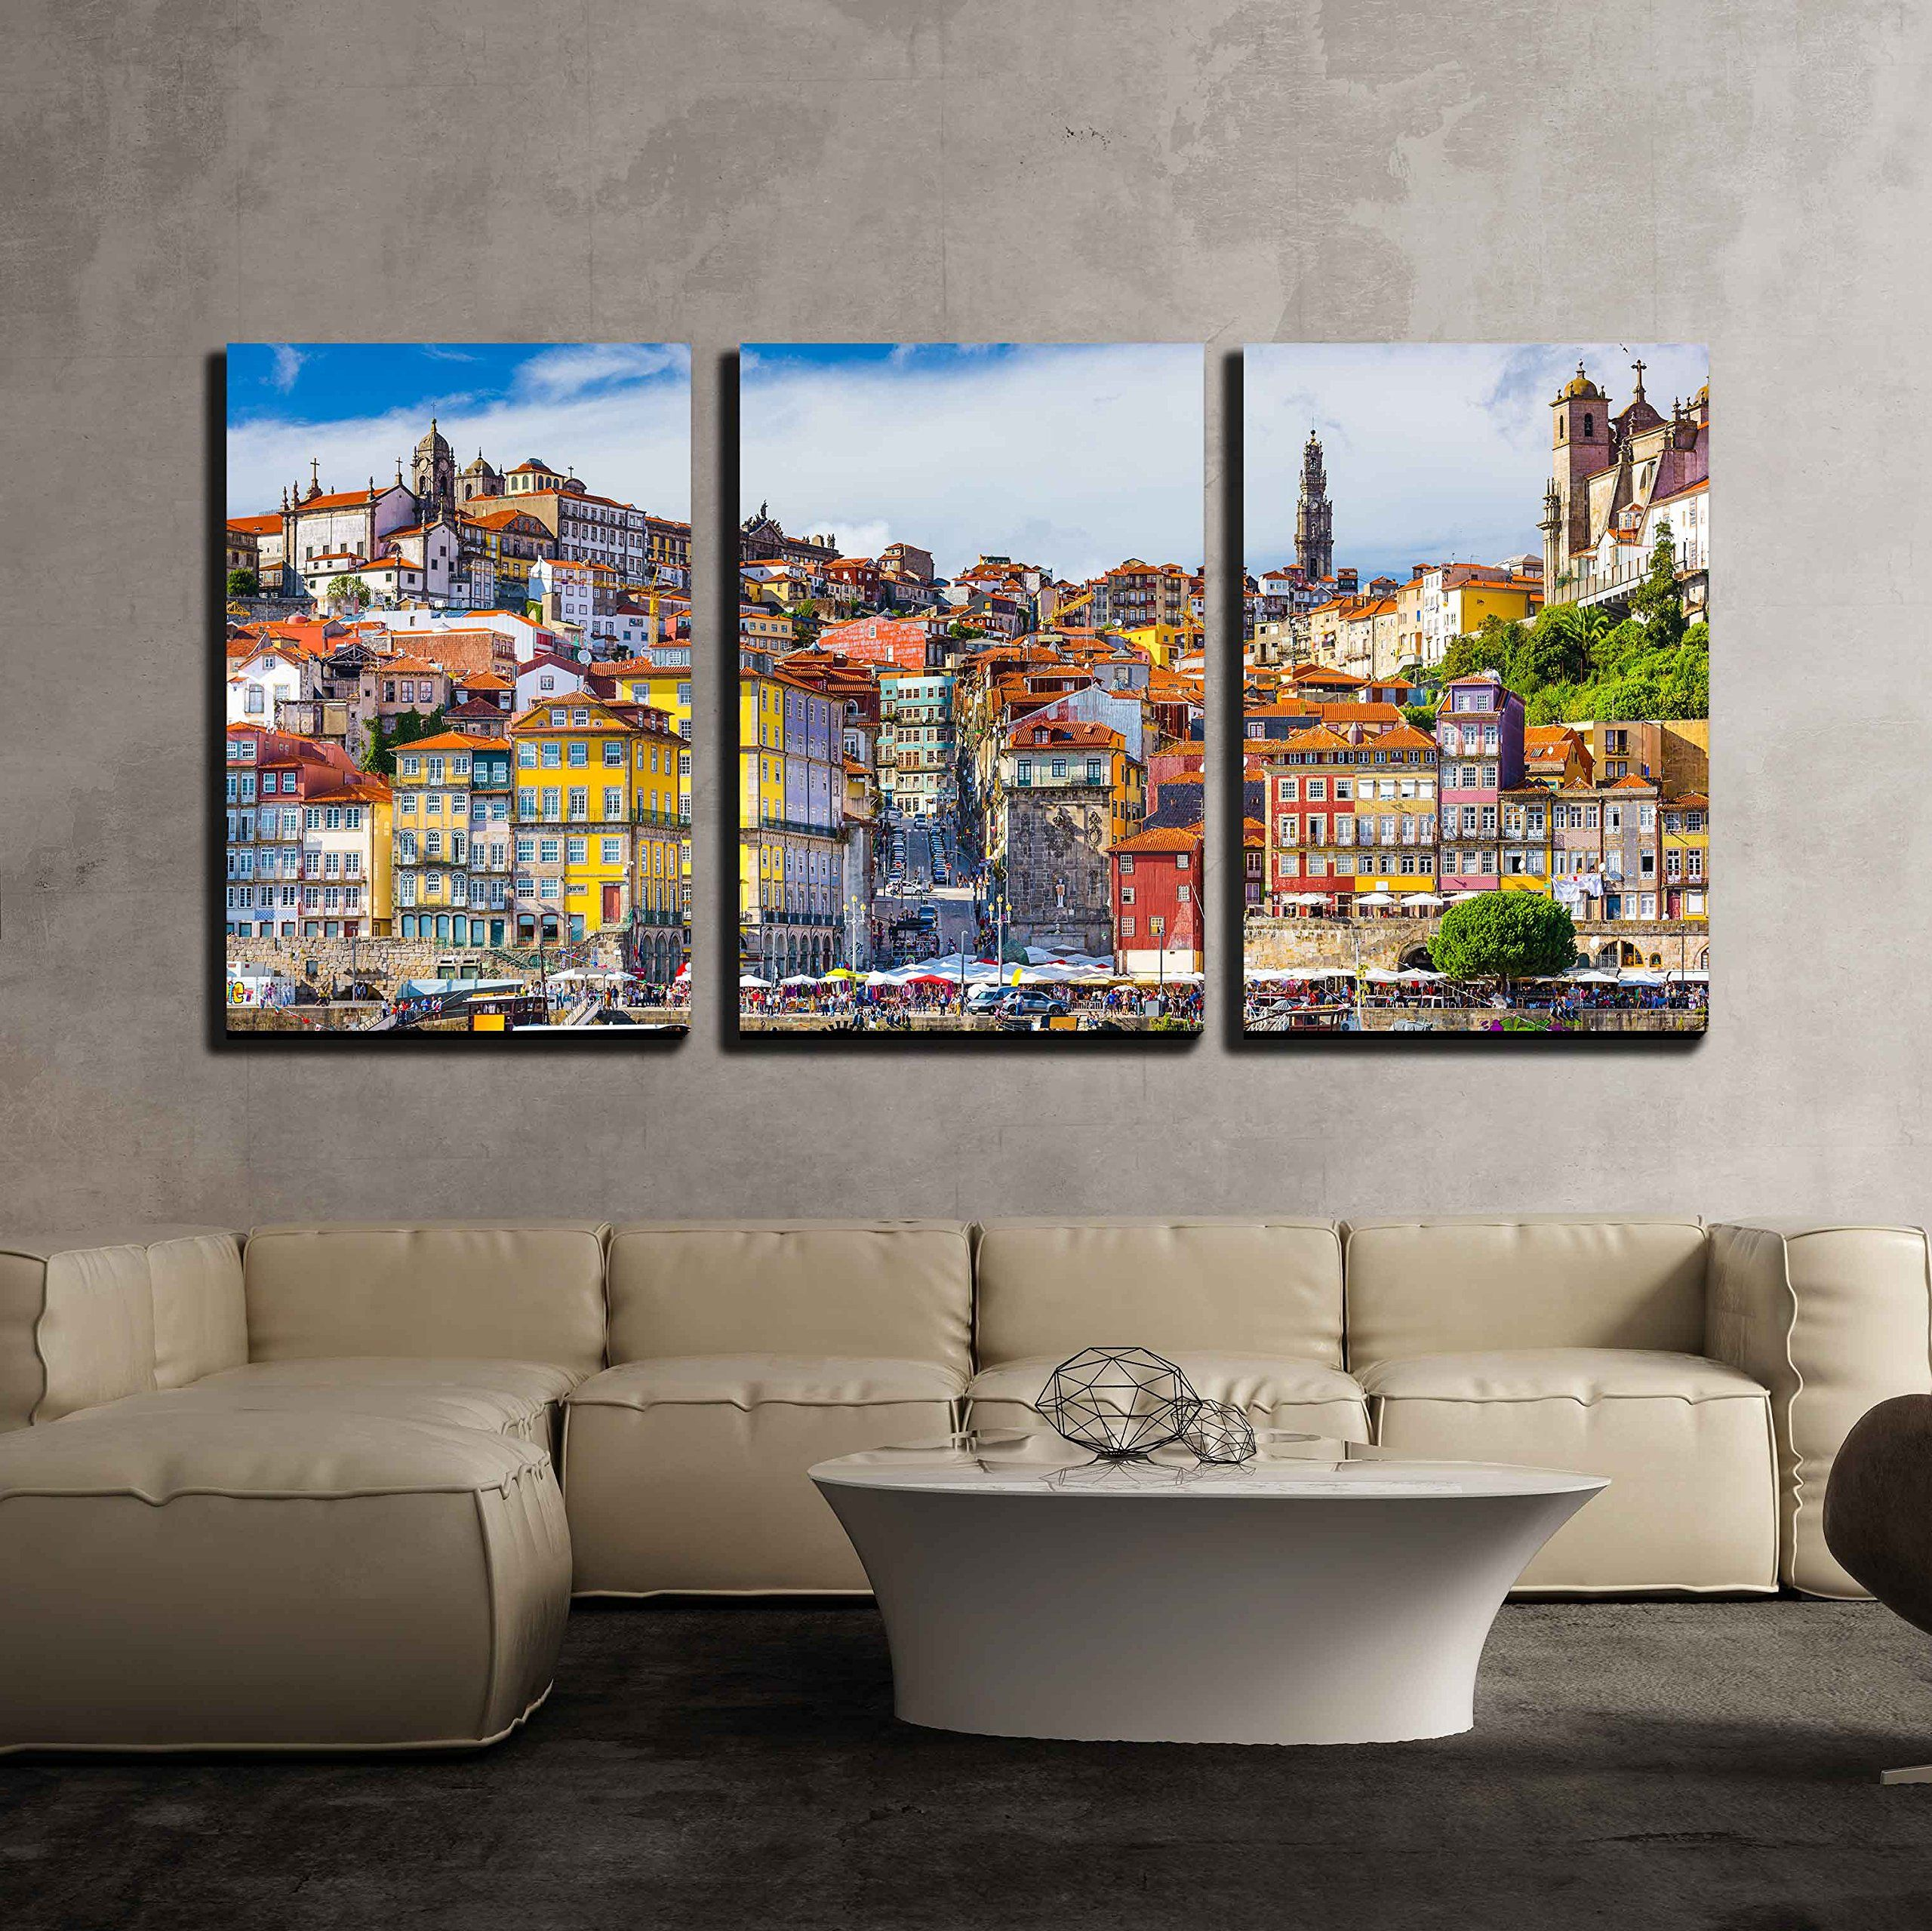 Wall26 3 Piece Canvas Wall Art Porto Portugal Old Town Skyline From Across The Douro River Modern Home Decor Stretched Home Remodeling Art Wall Home Decor